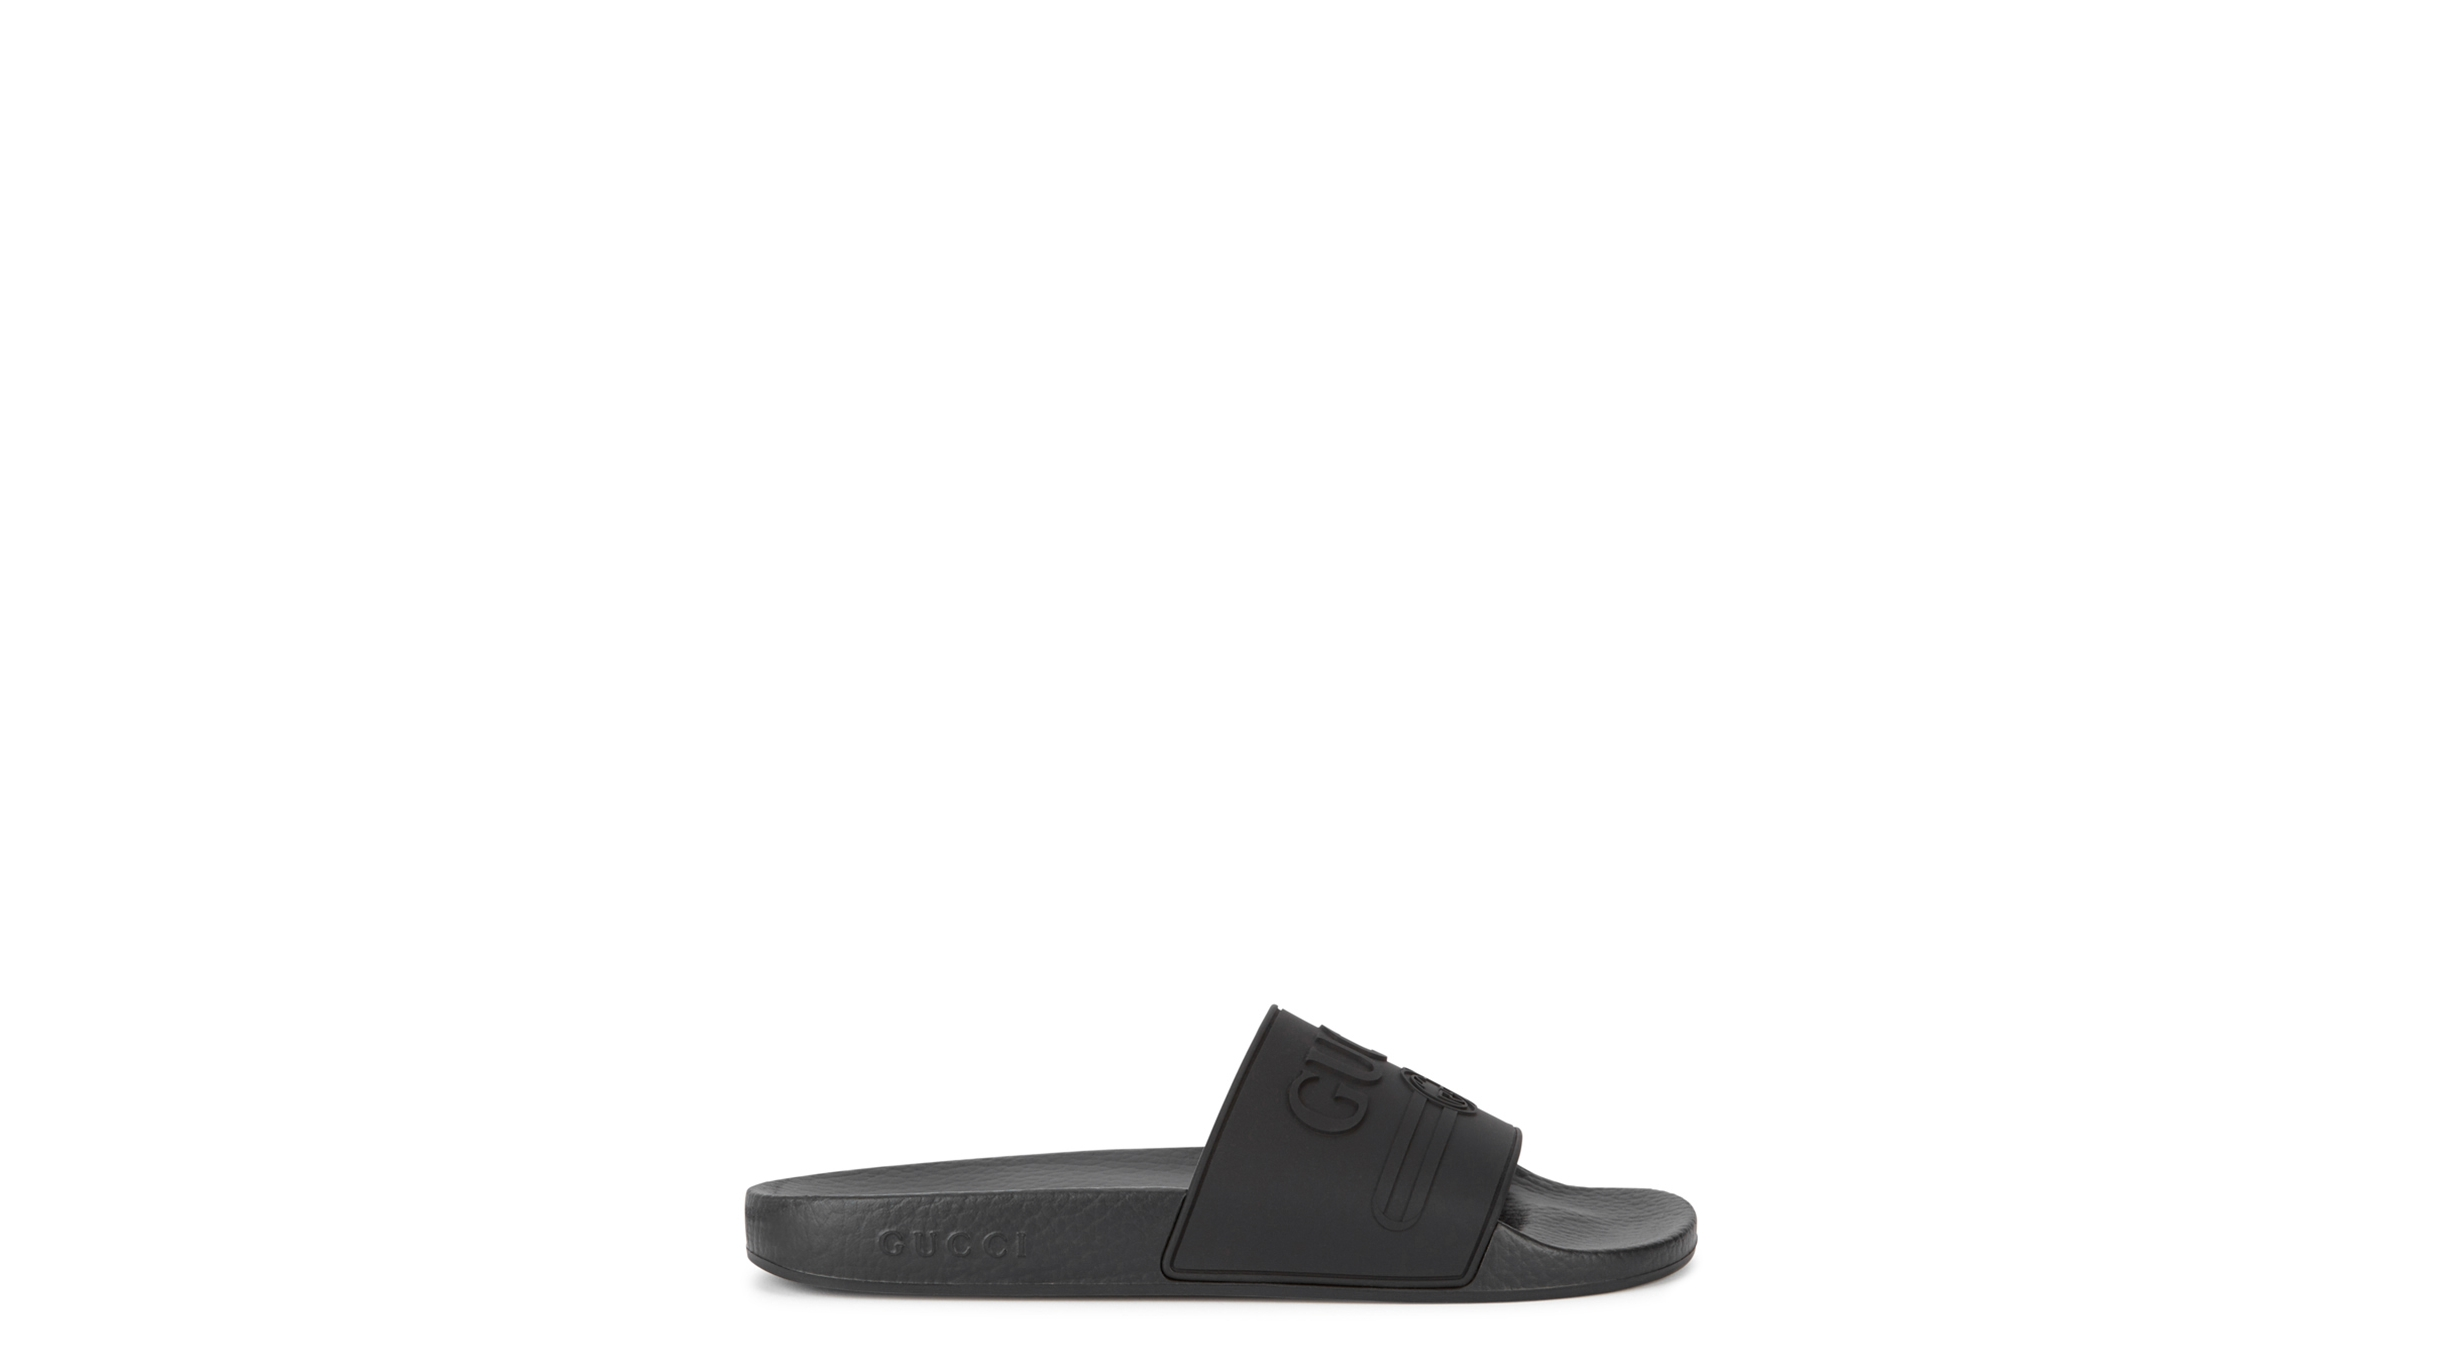 ea5a51aff4355f Gucci Pursuit black rubber sliders - Harvey Nichols